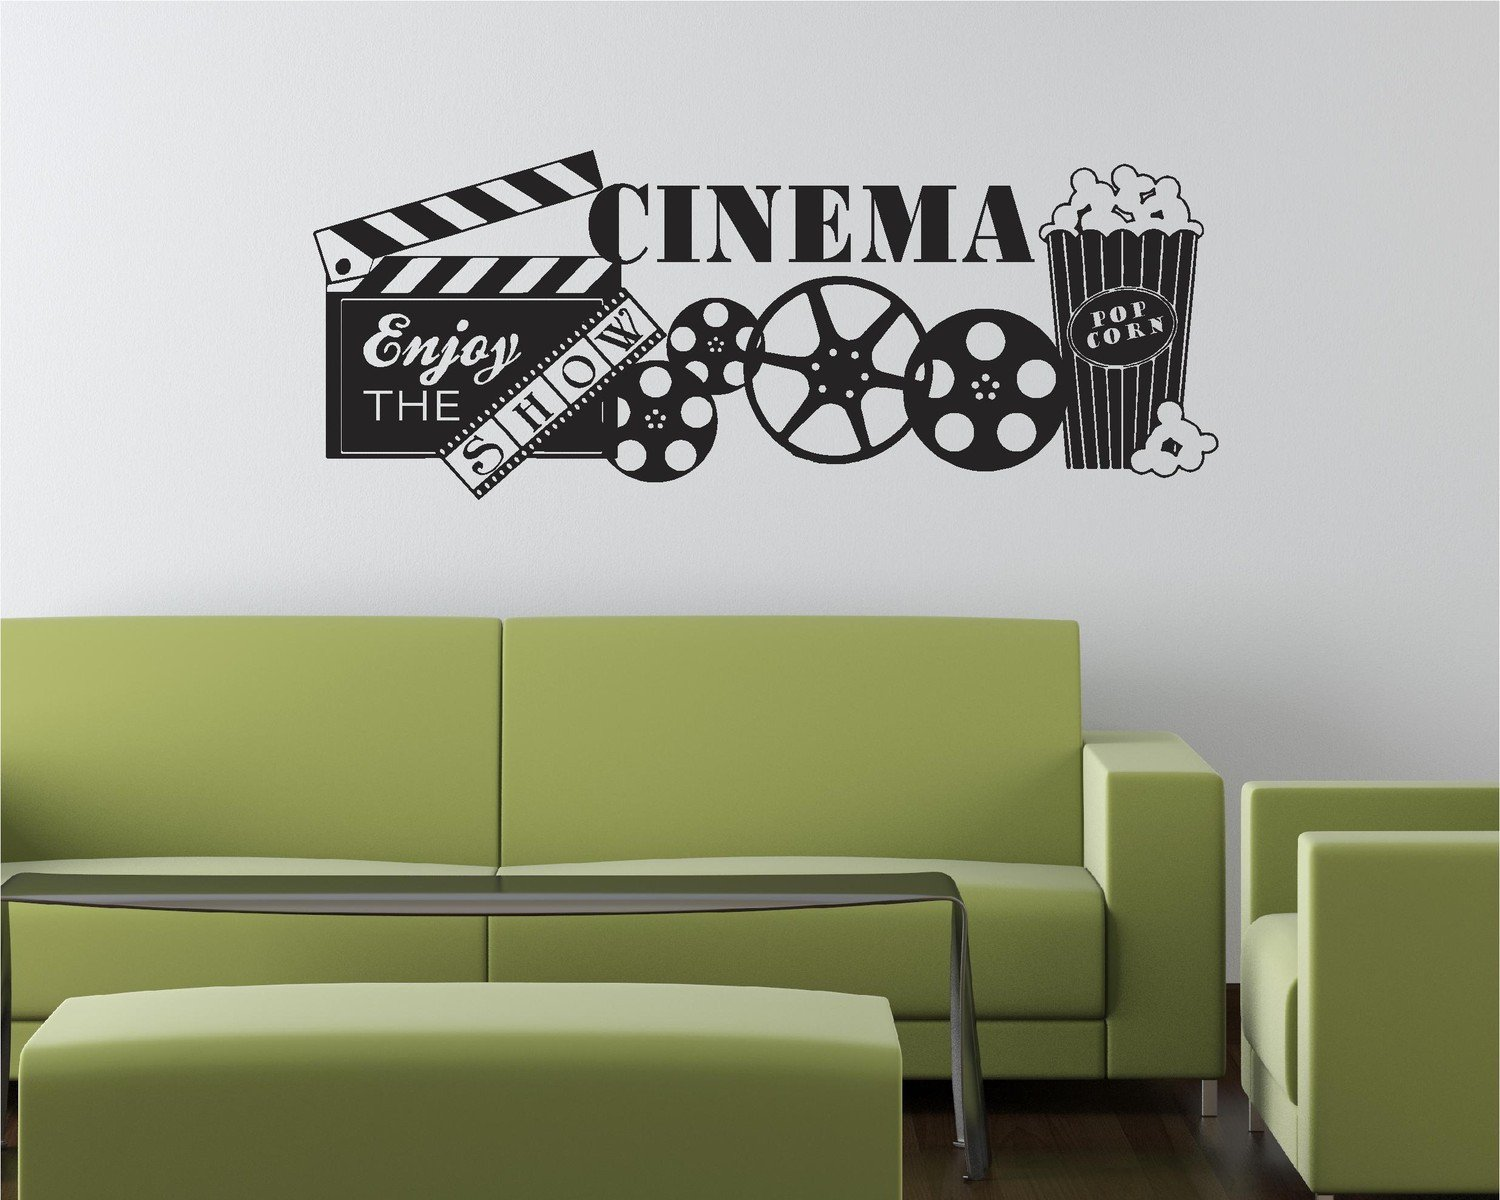 Bedroom Wall Art Decor Inspirational 17 Cinema Wall Art Kunuzmetals